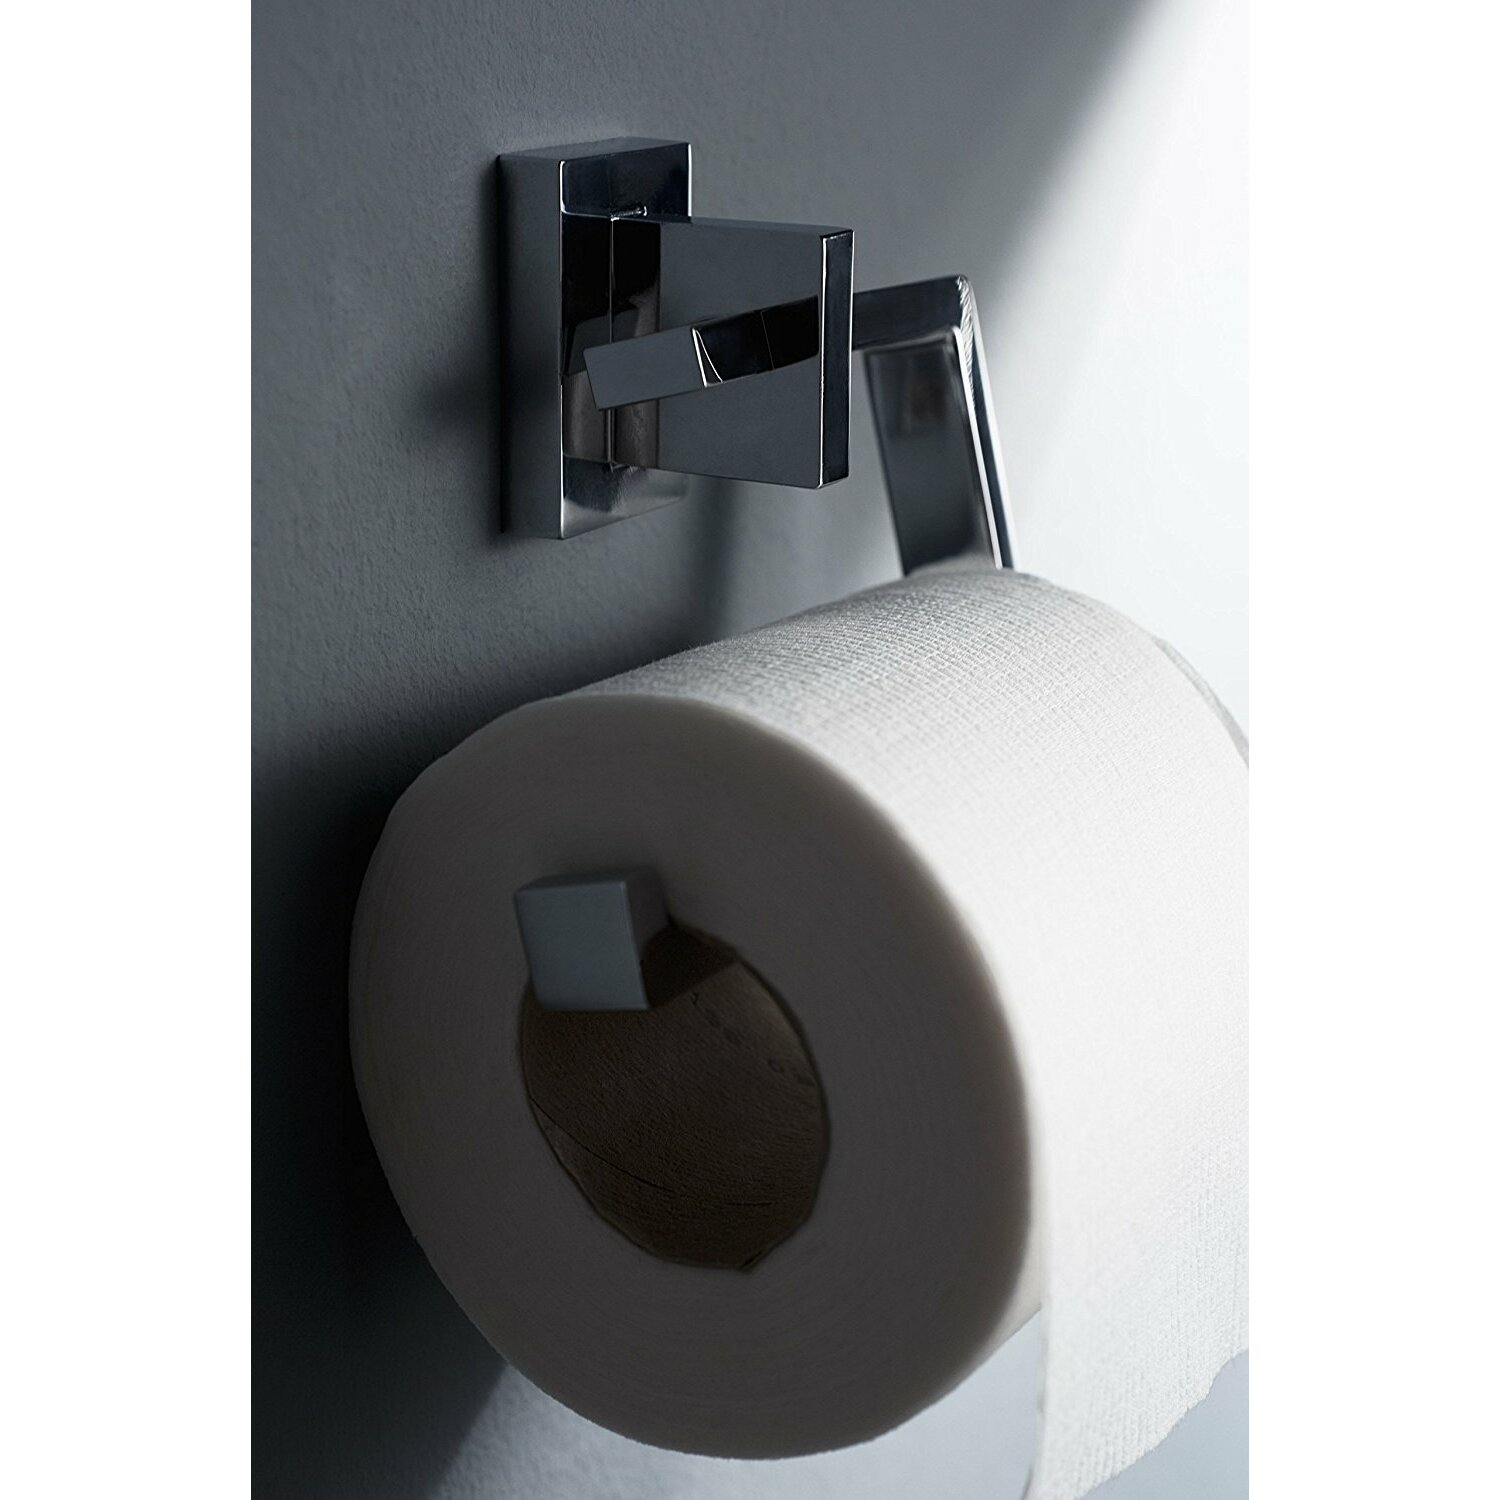 Haceka edge wall mounted toilet roll holder in chrome Glass toilet roll holder